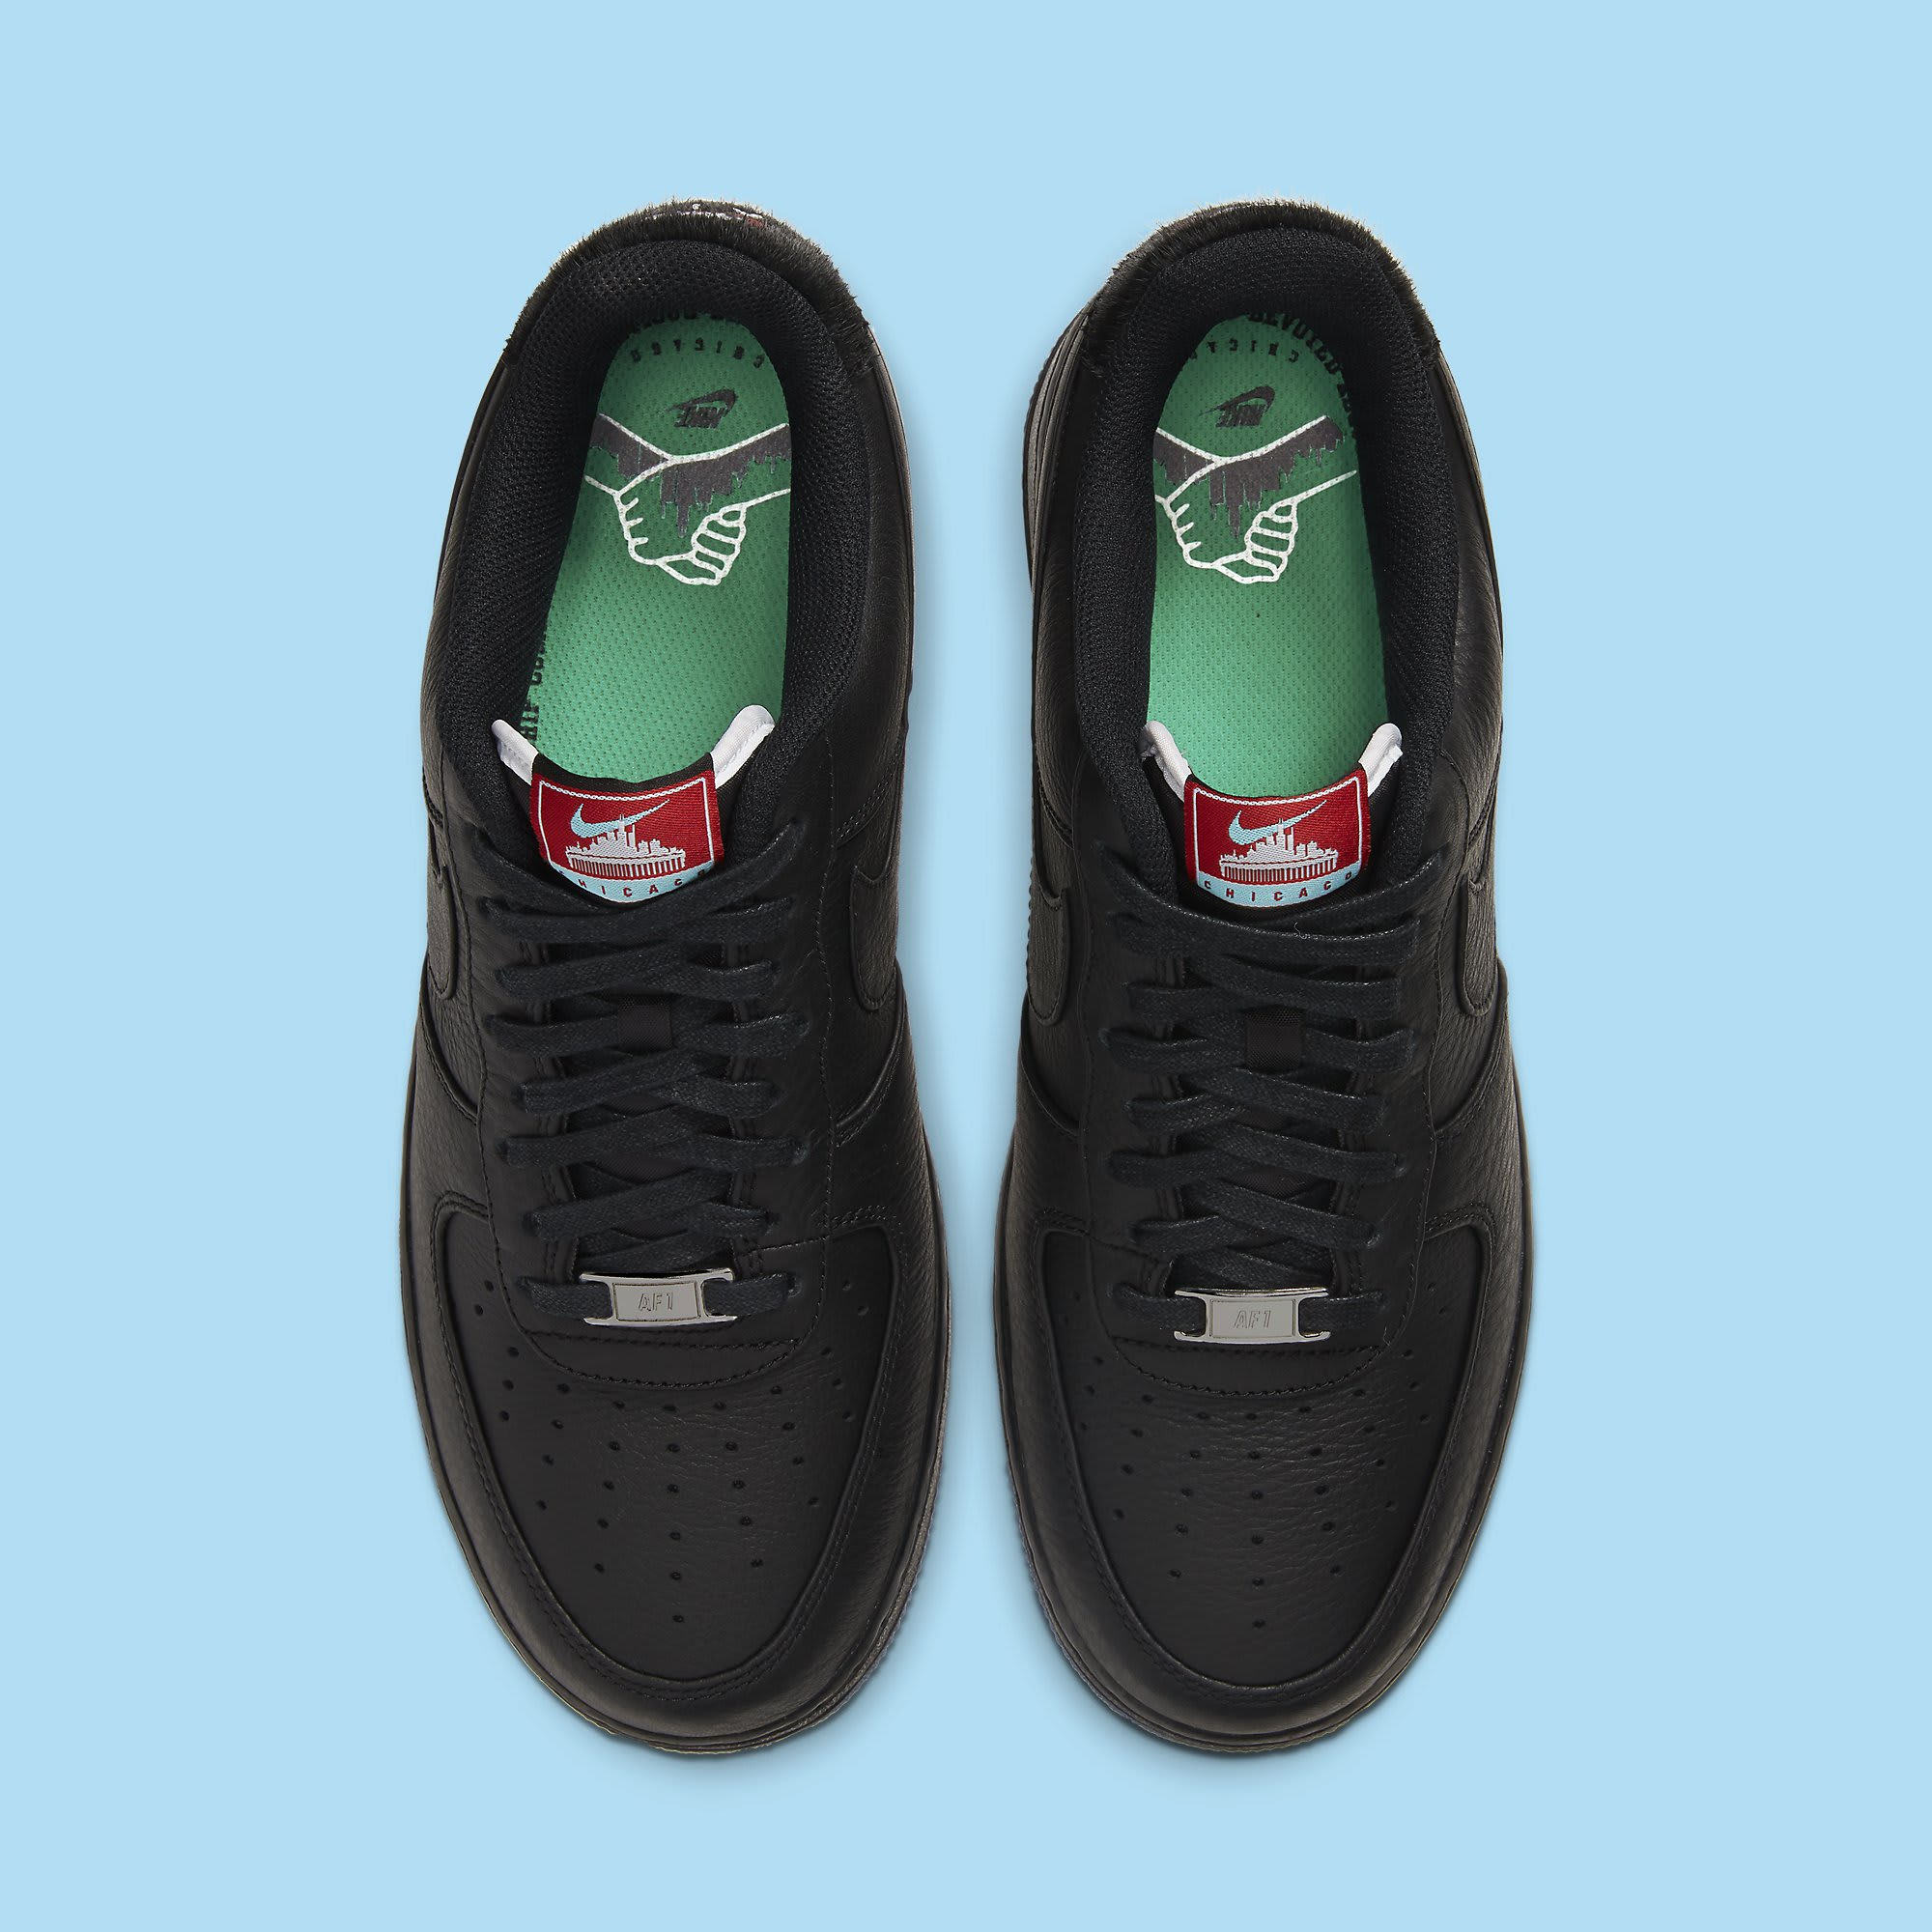 nike-air-force-1-low-chicago-ct1520-001-top